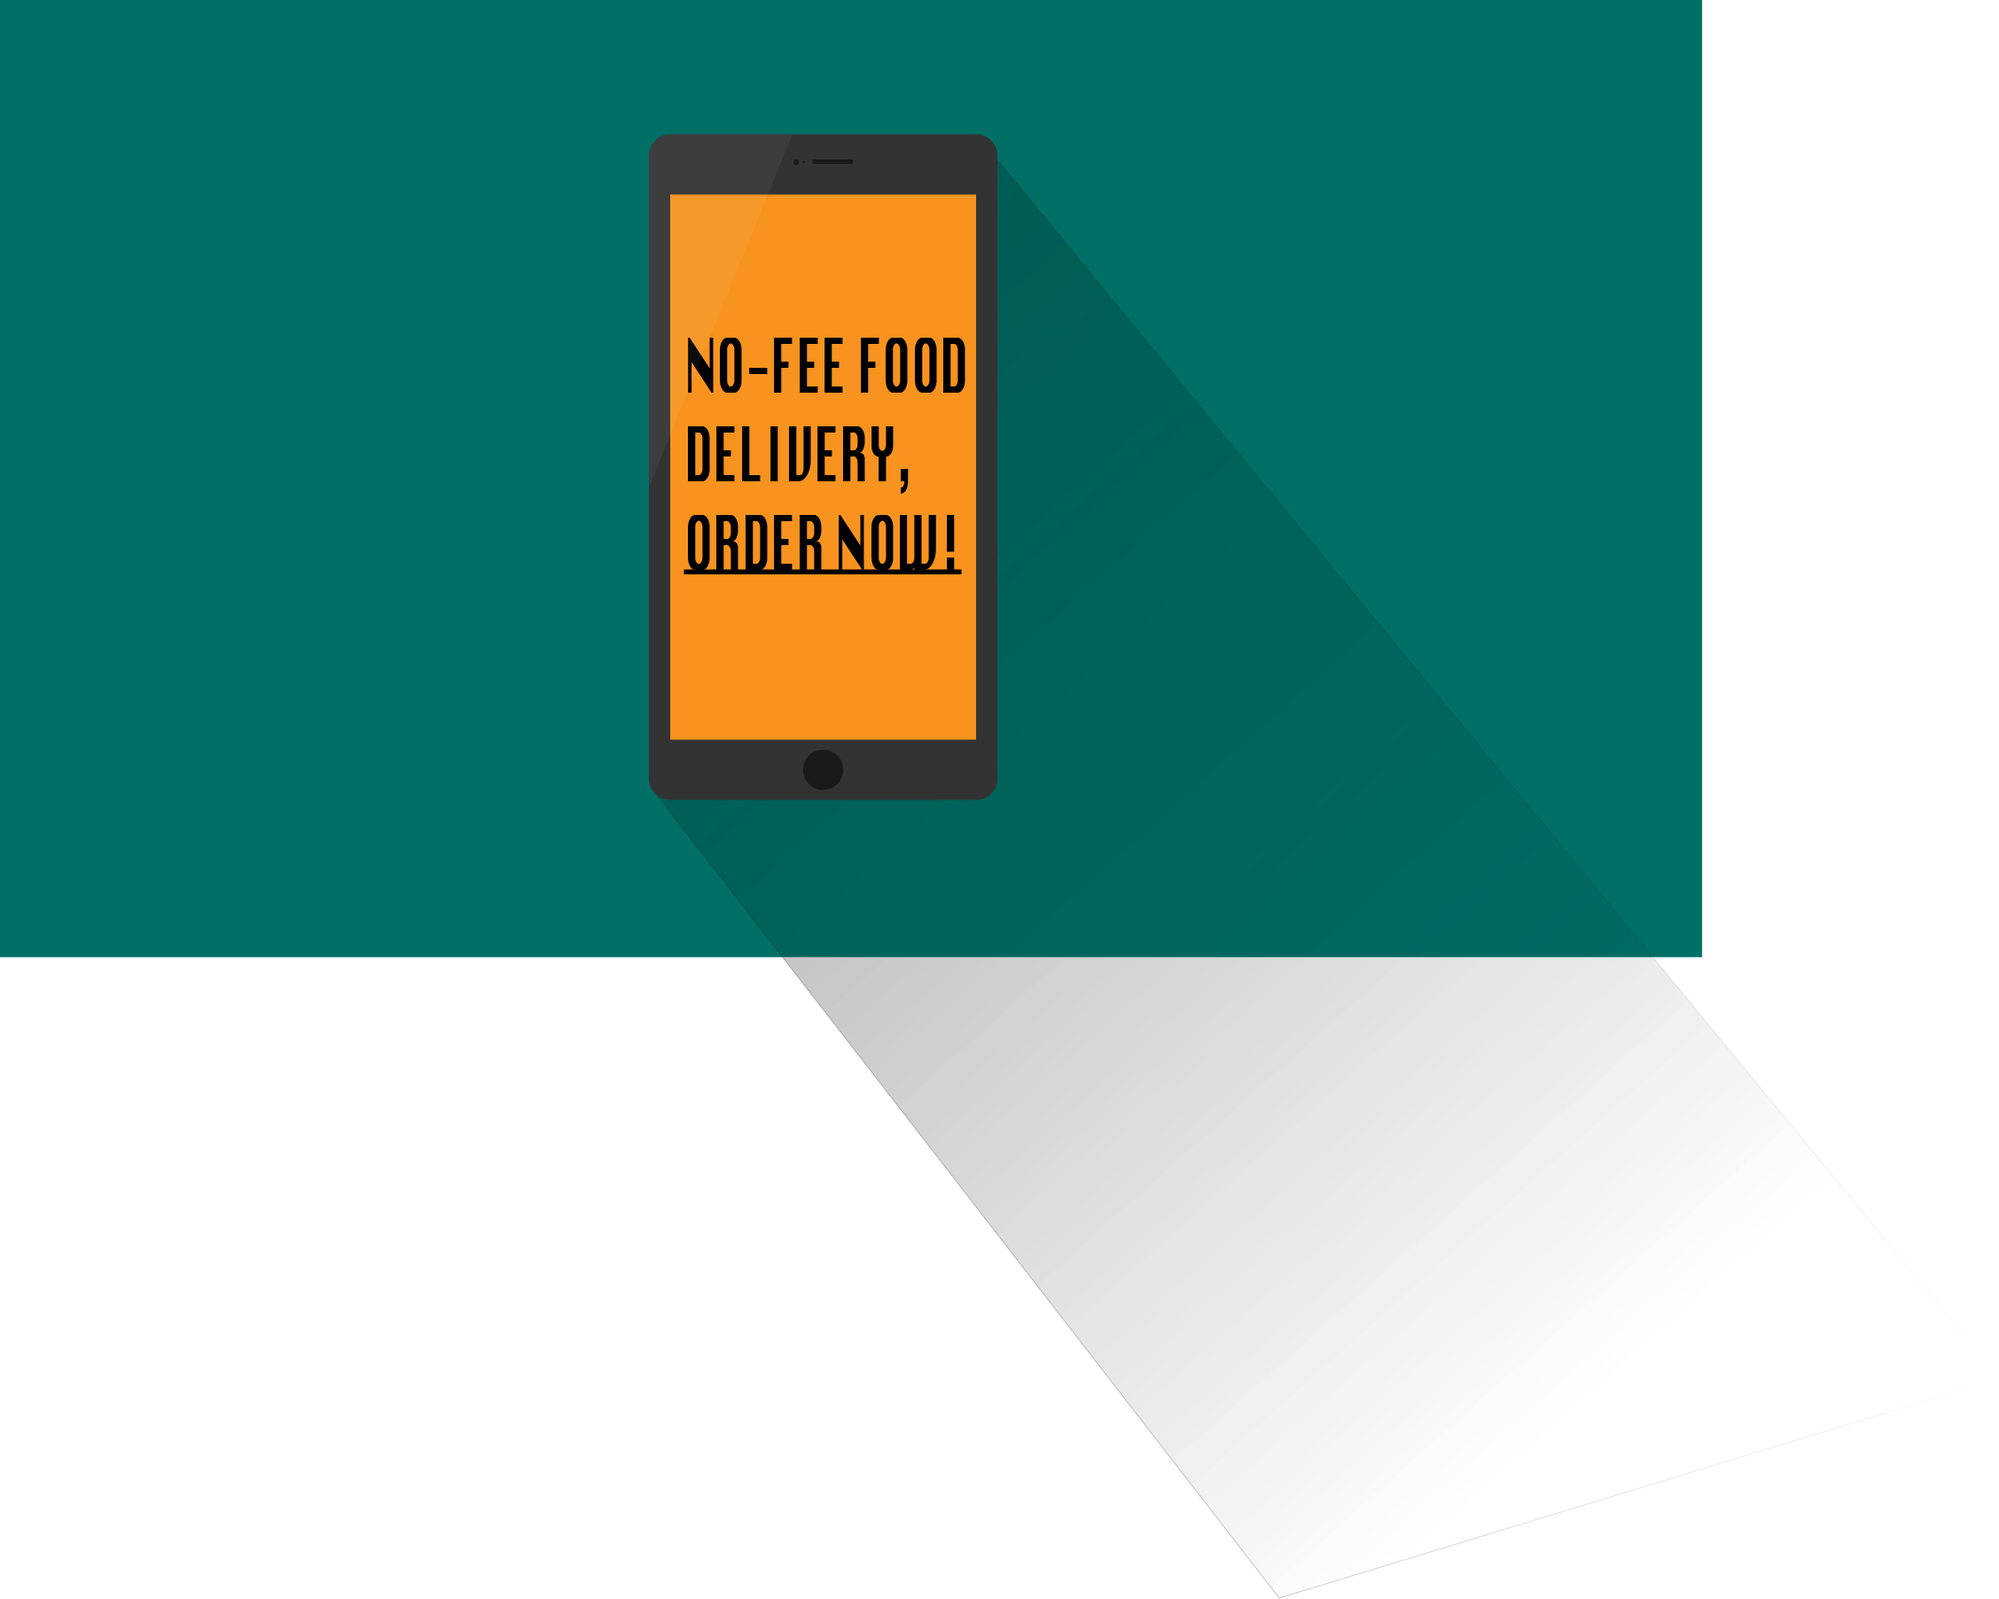 A food delivery app.